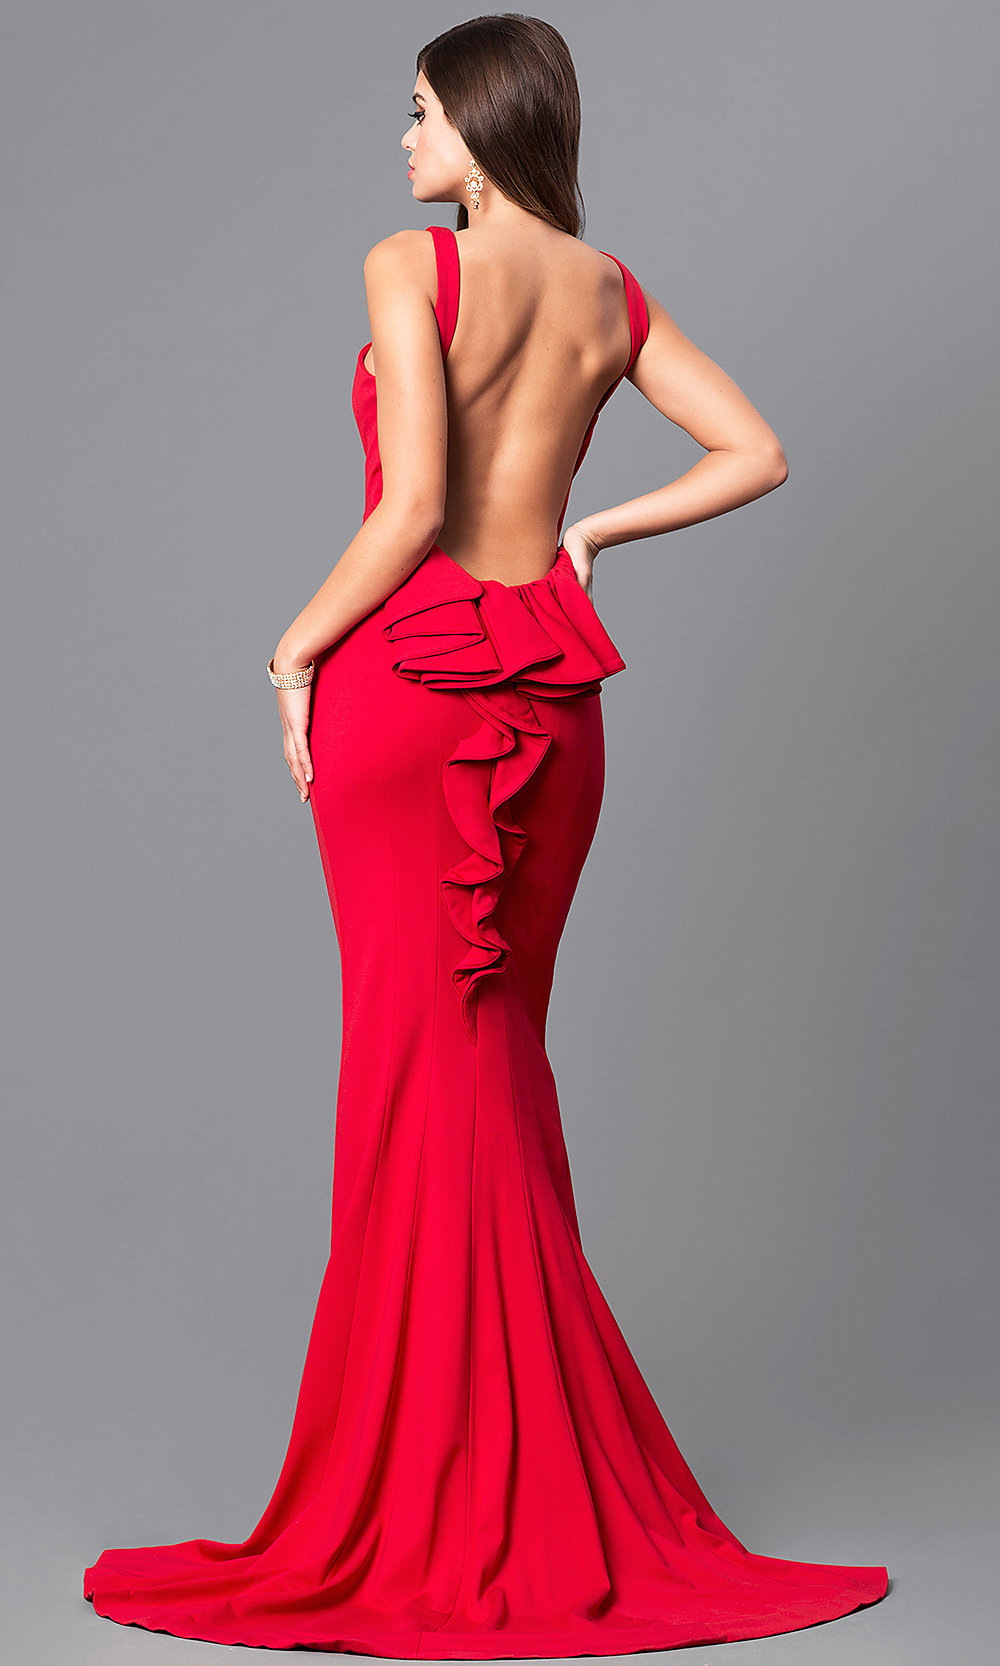 Mermaid OpenBack Prom Dress with Bustle  PromGirl